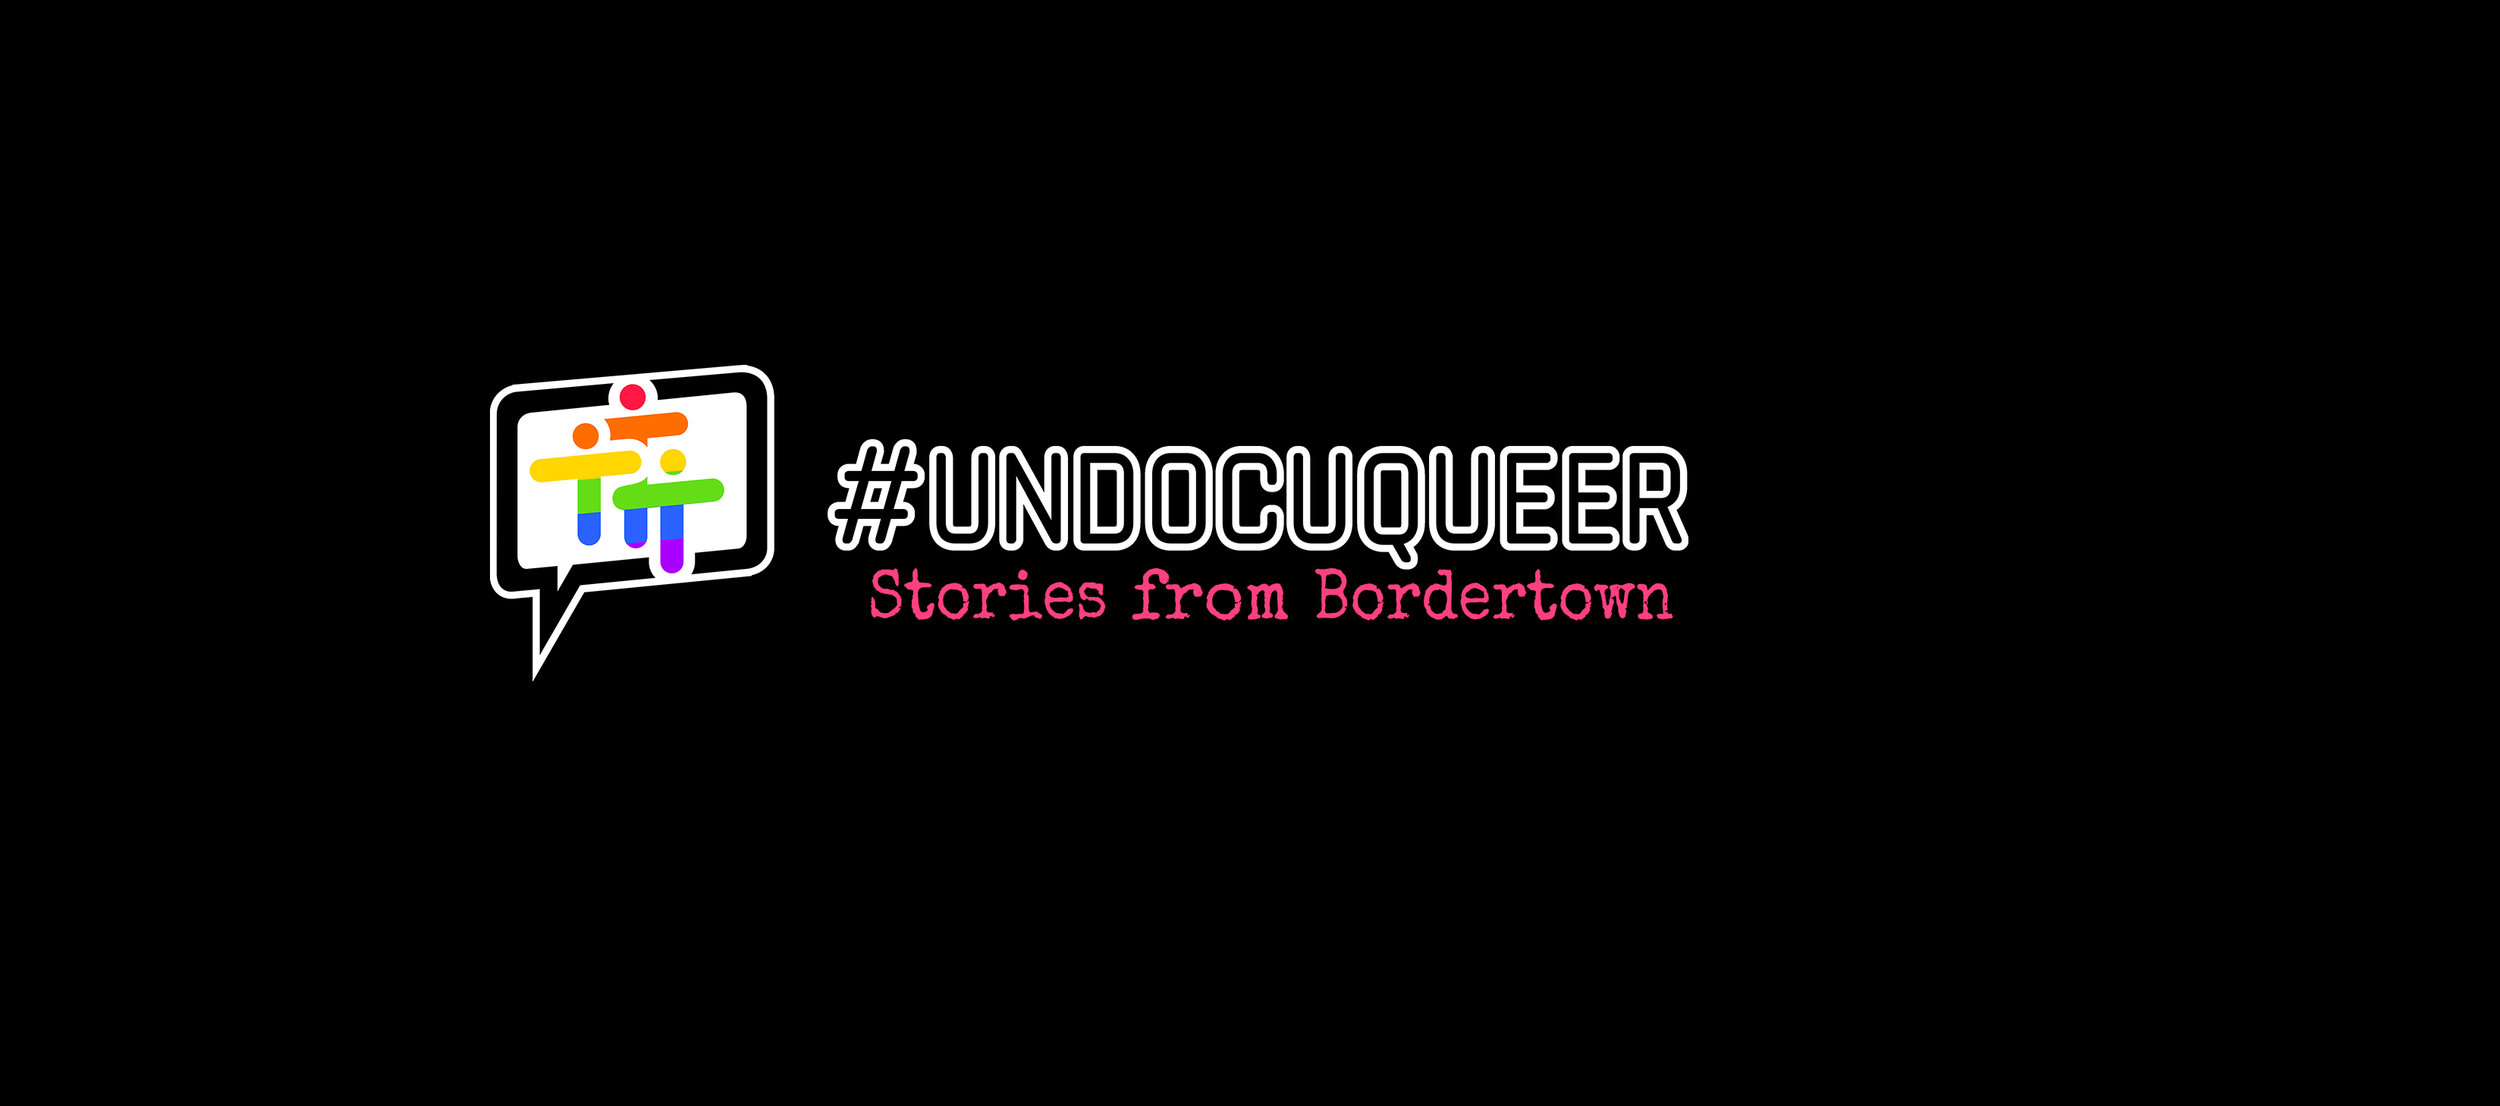 This past year I launched a website for story telling and resources for undocumented queer individuals. The photo work that I've created for this project connects to this website through QR codes. Giving people the space to share their own stories anonymously or publicly. I've been working on ways to promote this website and gather resources for undocumented people. I hope to find more undocuqueer identifying people in different parts of the country that share their story with courage. Click the image to visit the website.